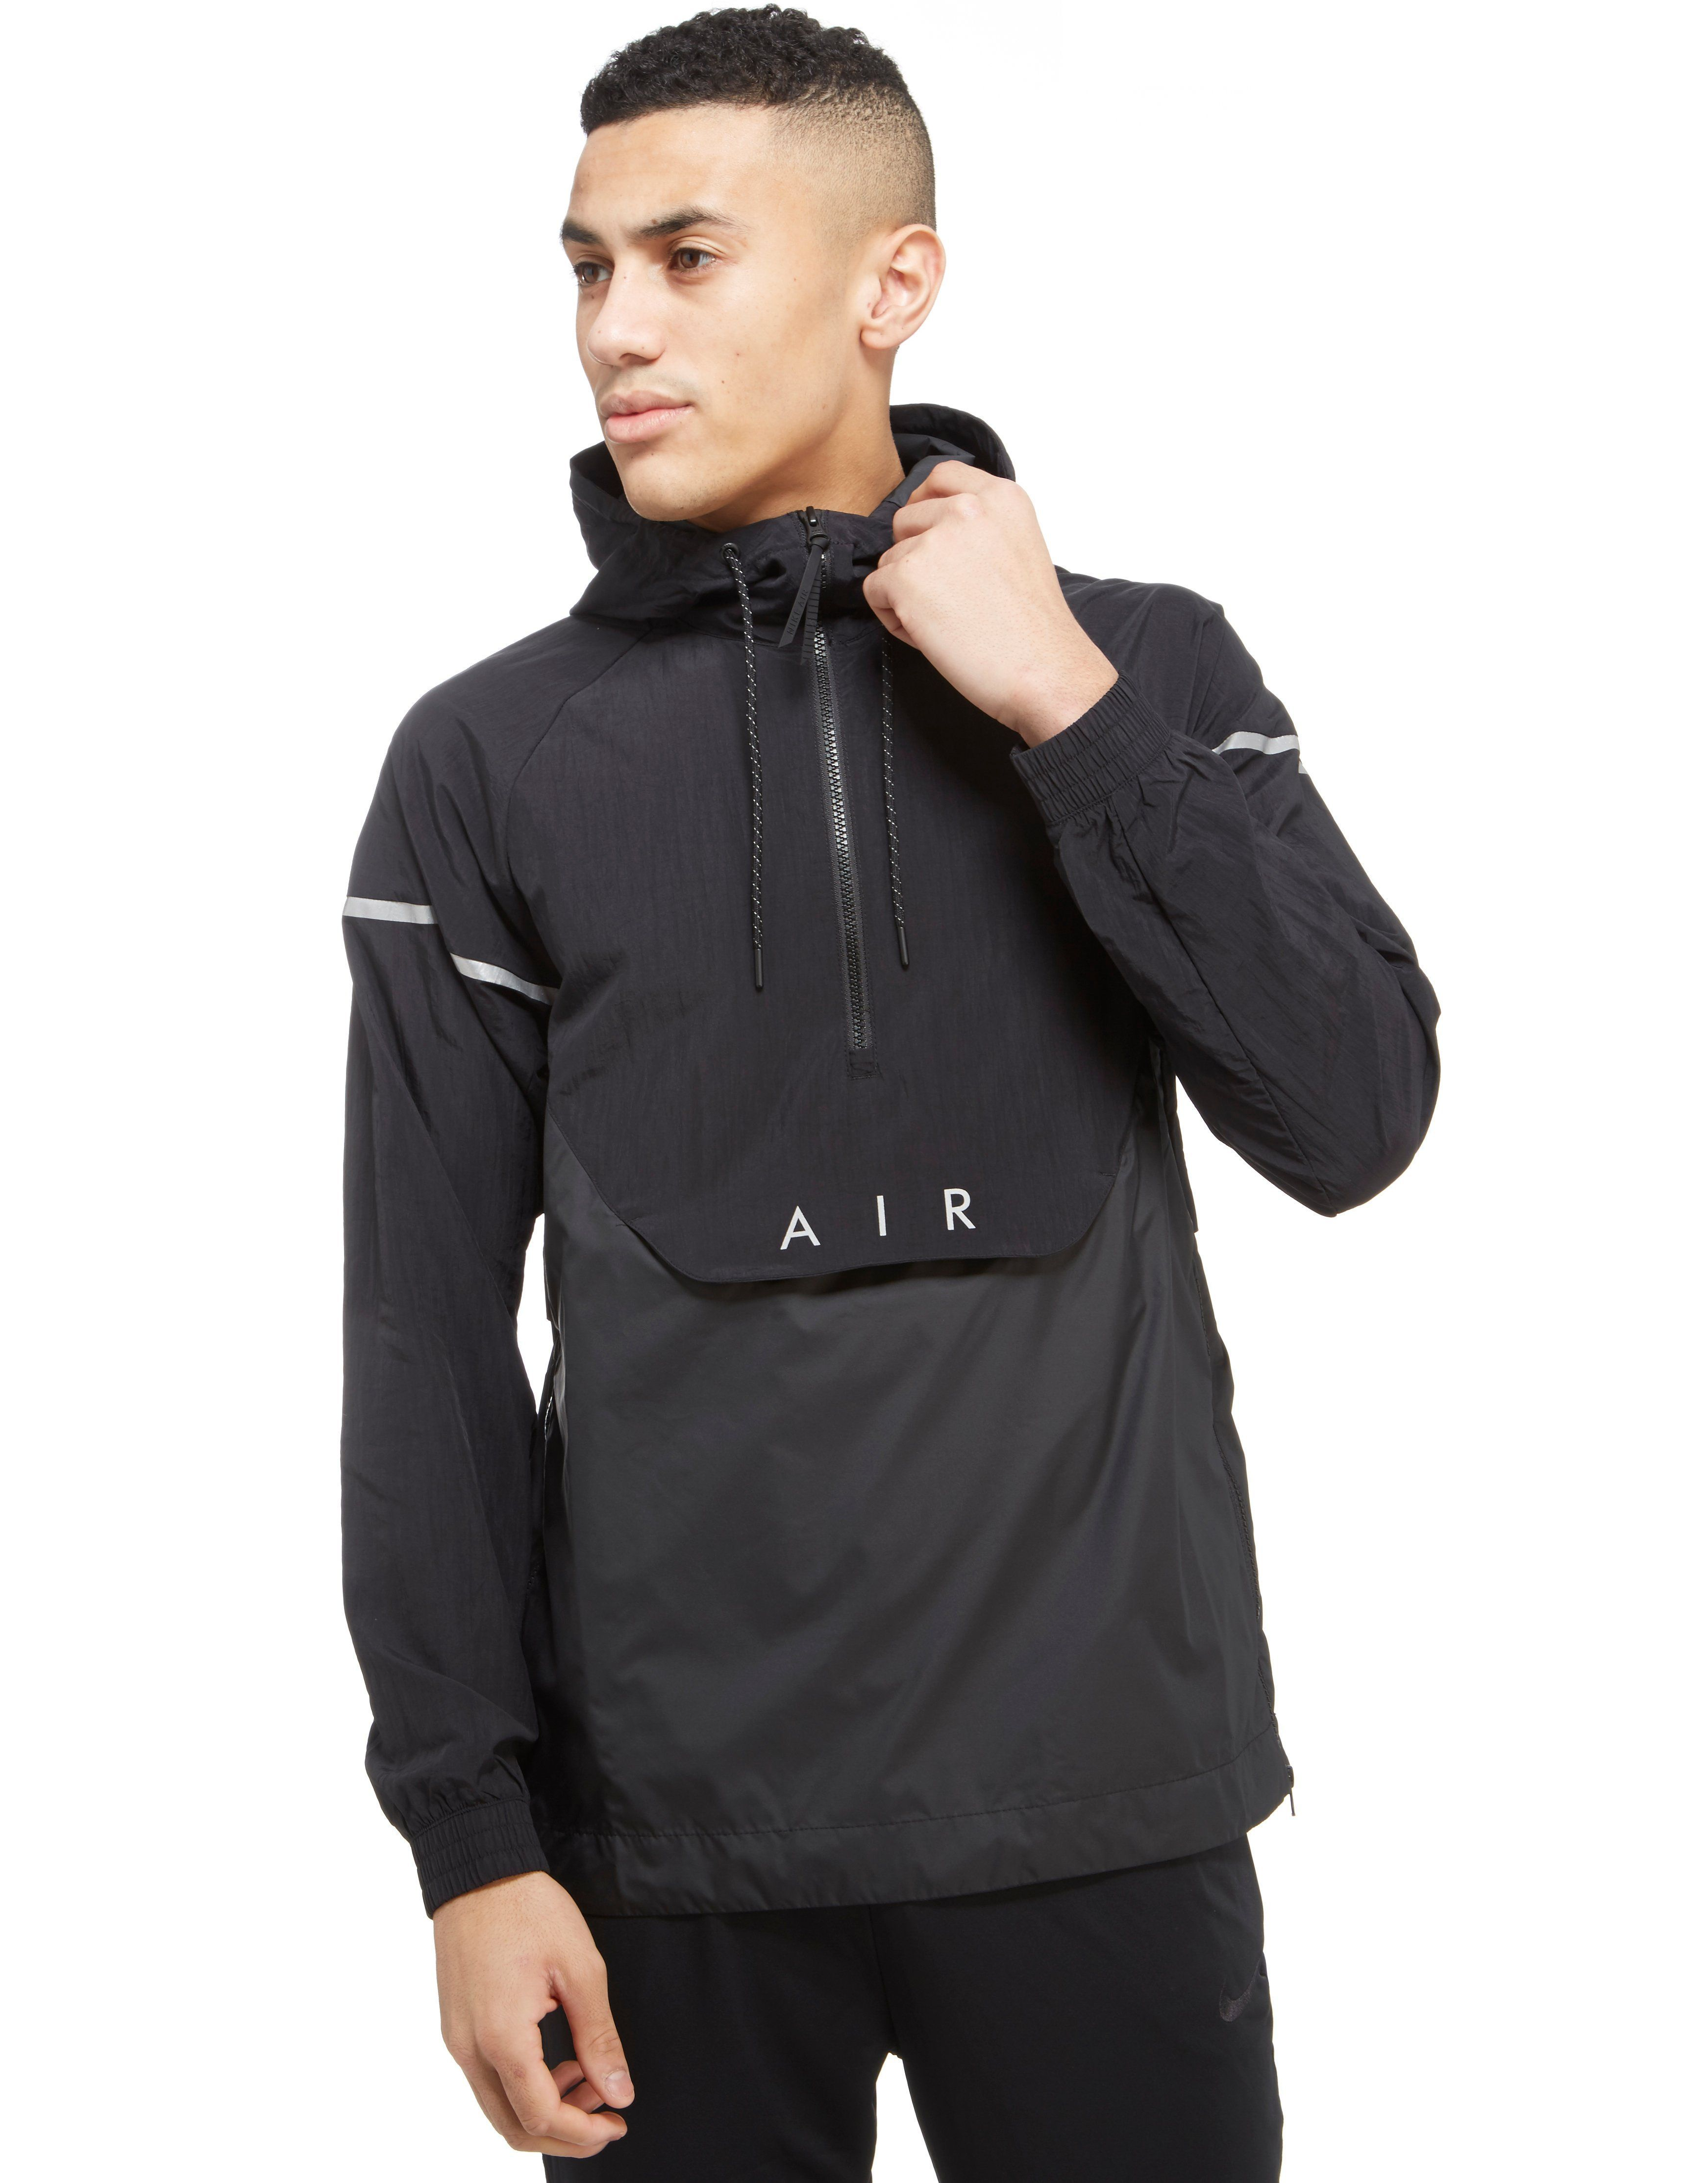 Nike air hybrid 1 2 zip woven jacket shop online for nike air hybrid